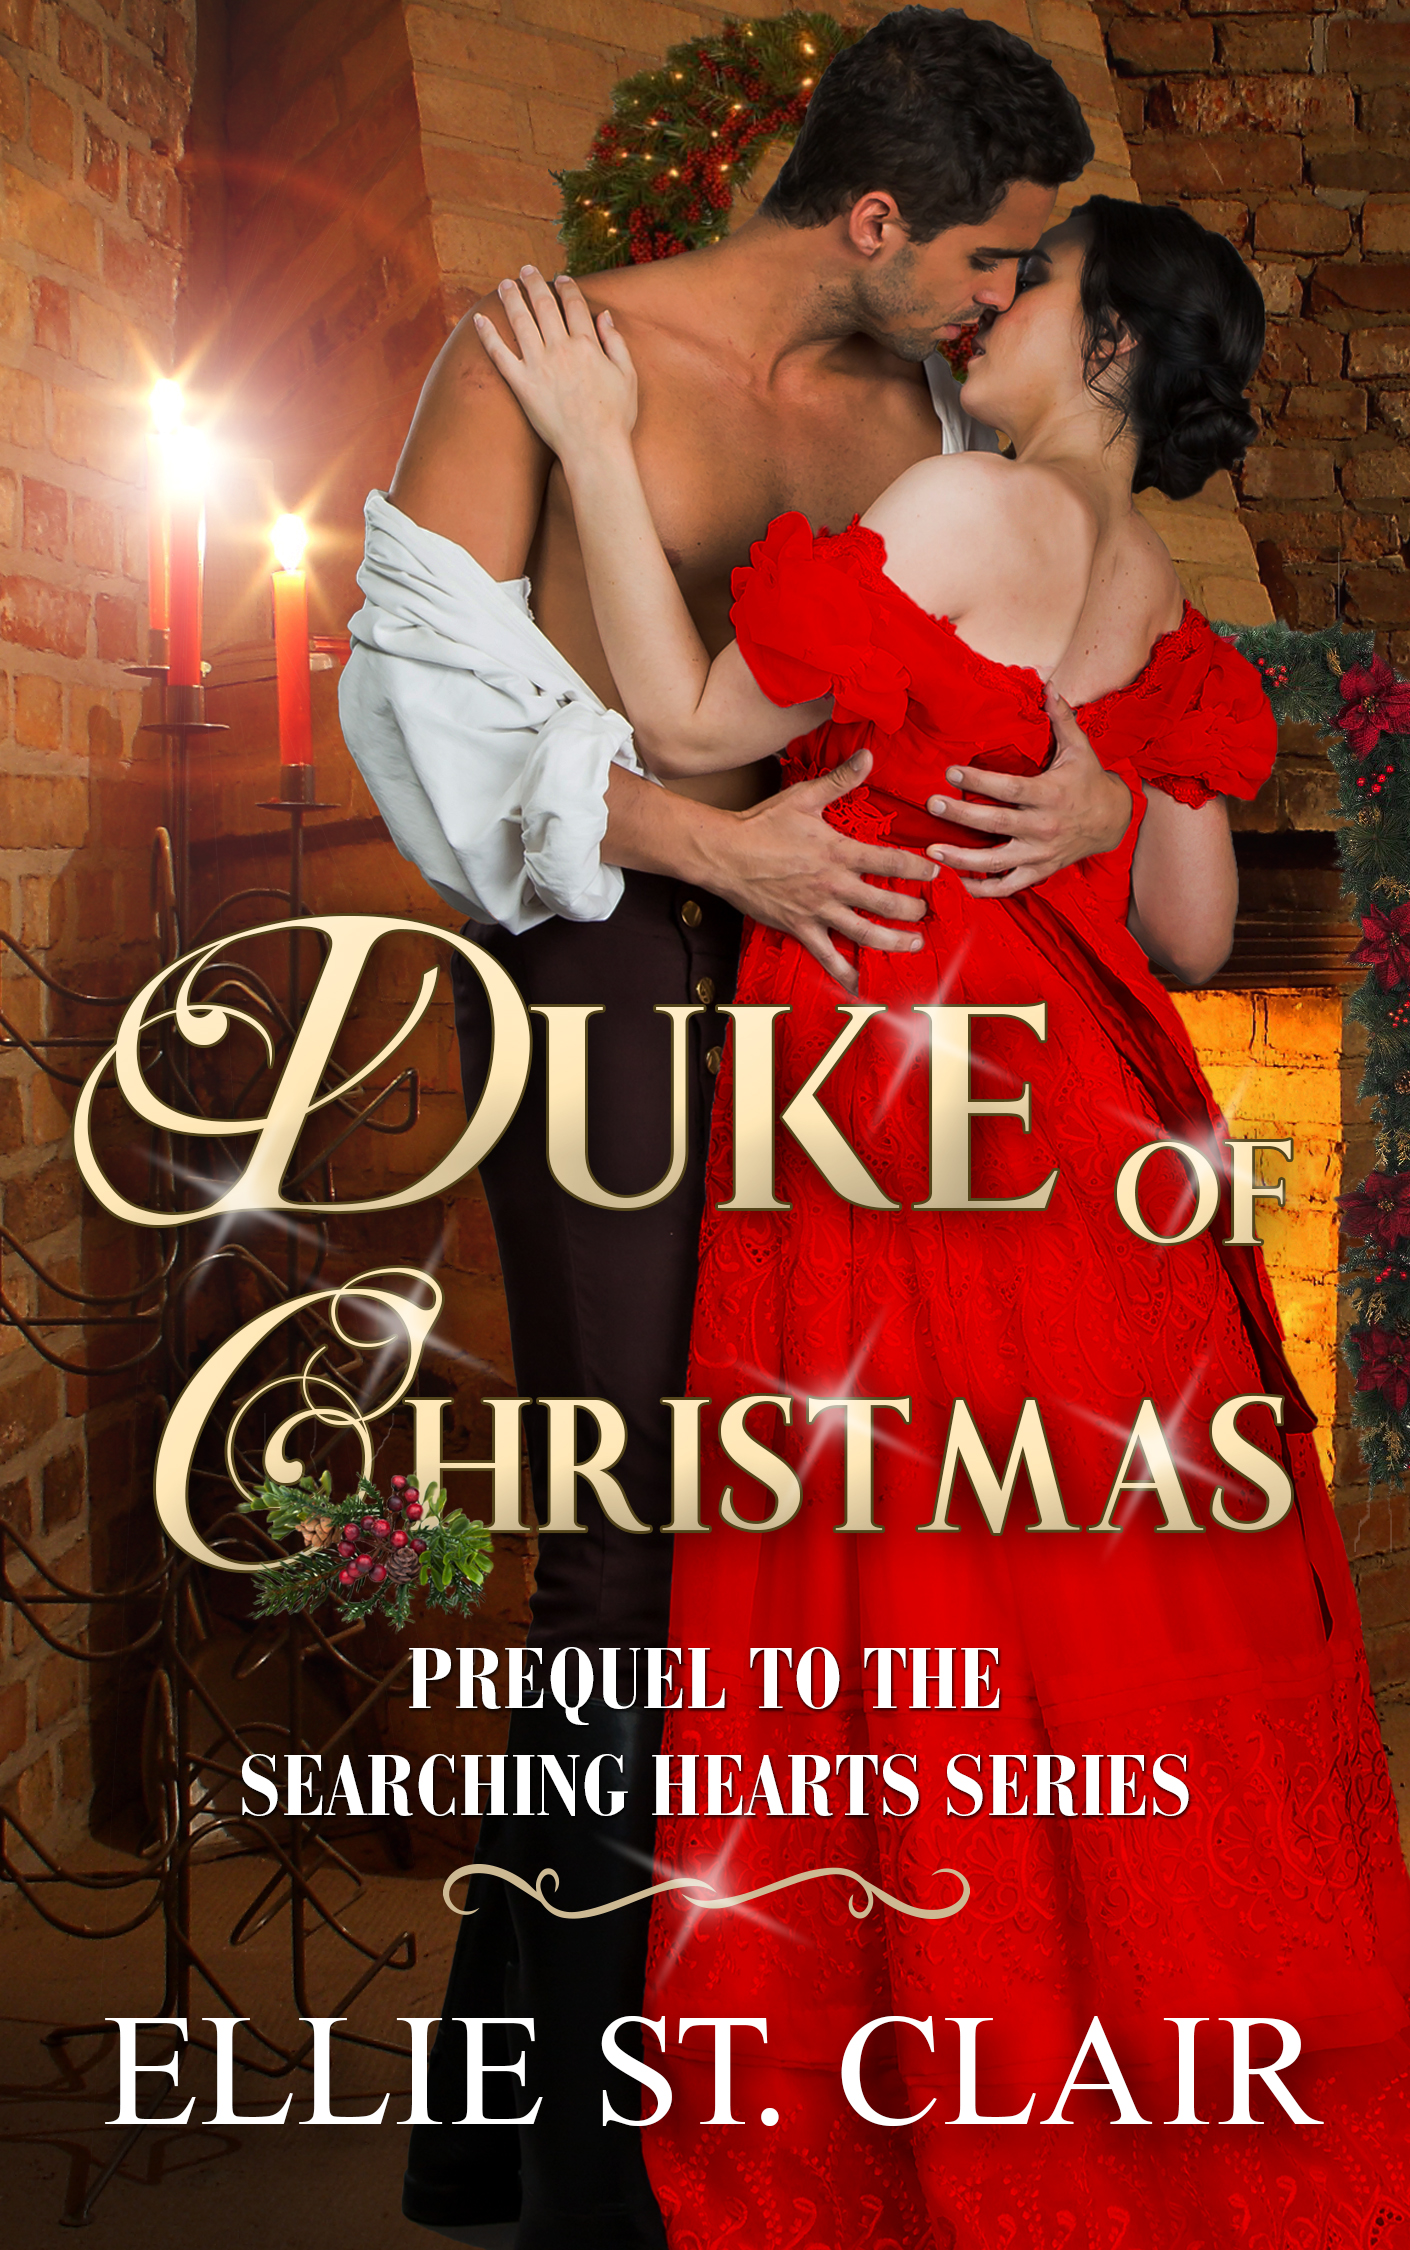 Duke-of-Christmas (2).jpg